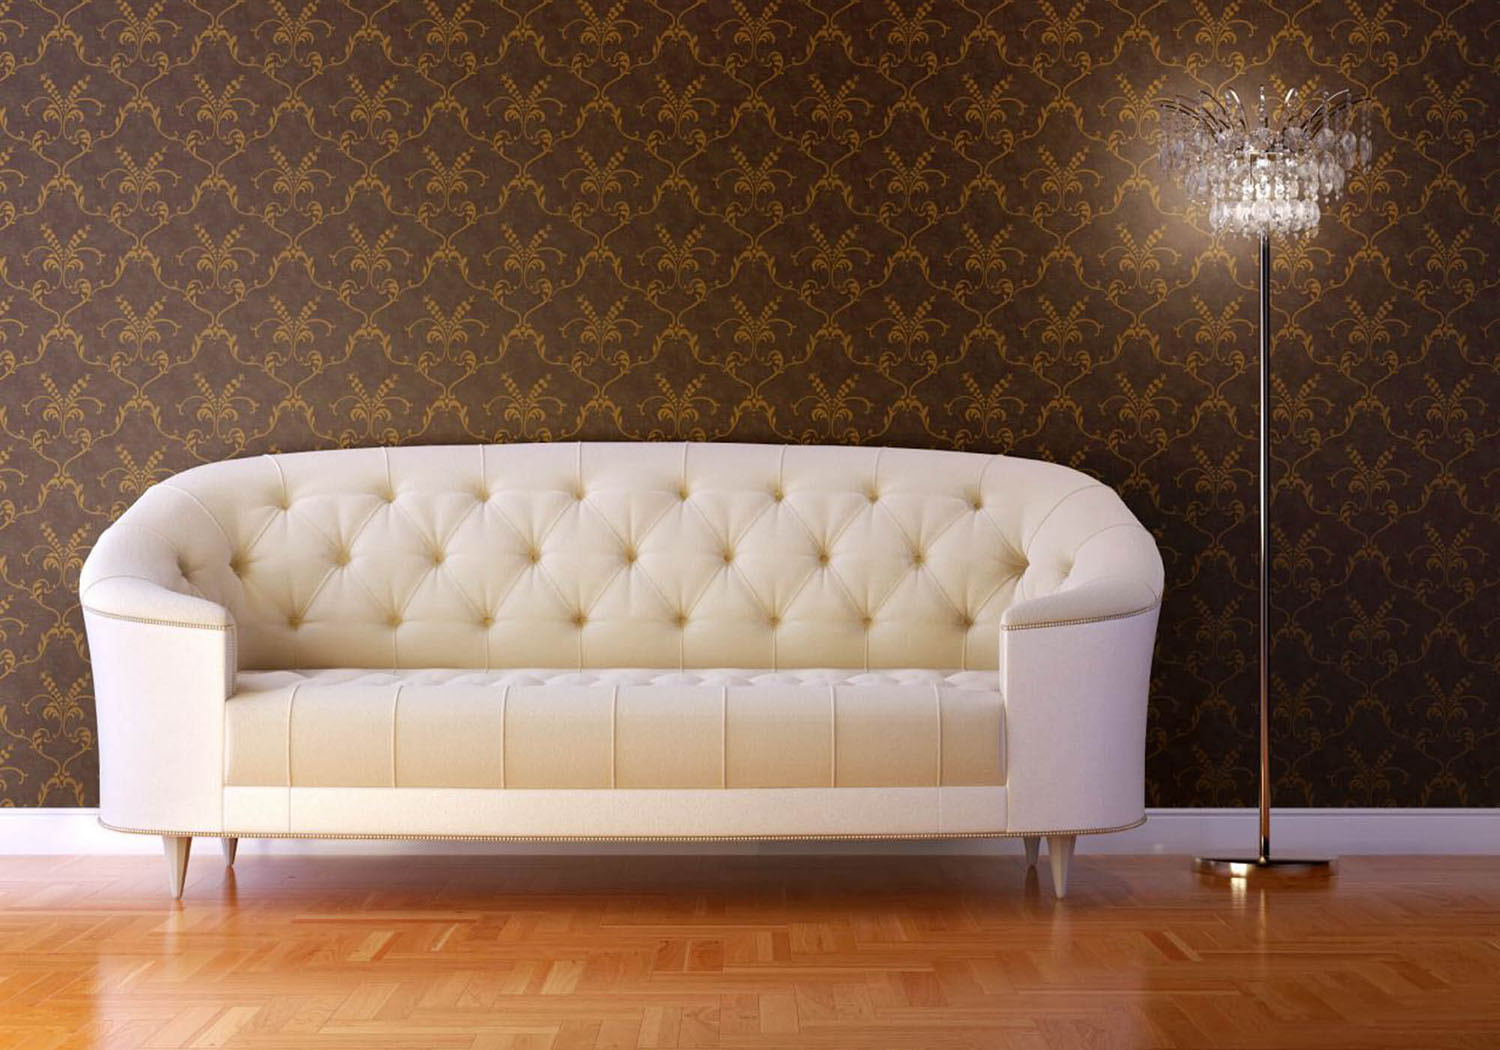 Chic Couches and Loveseats: Love 'em!